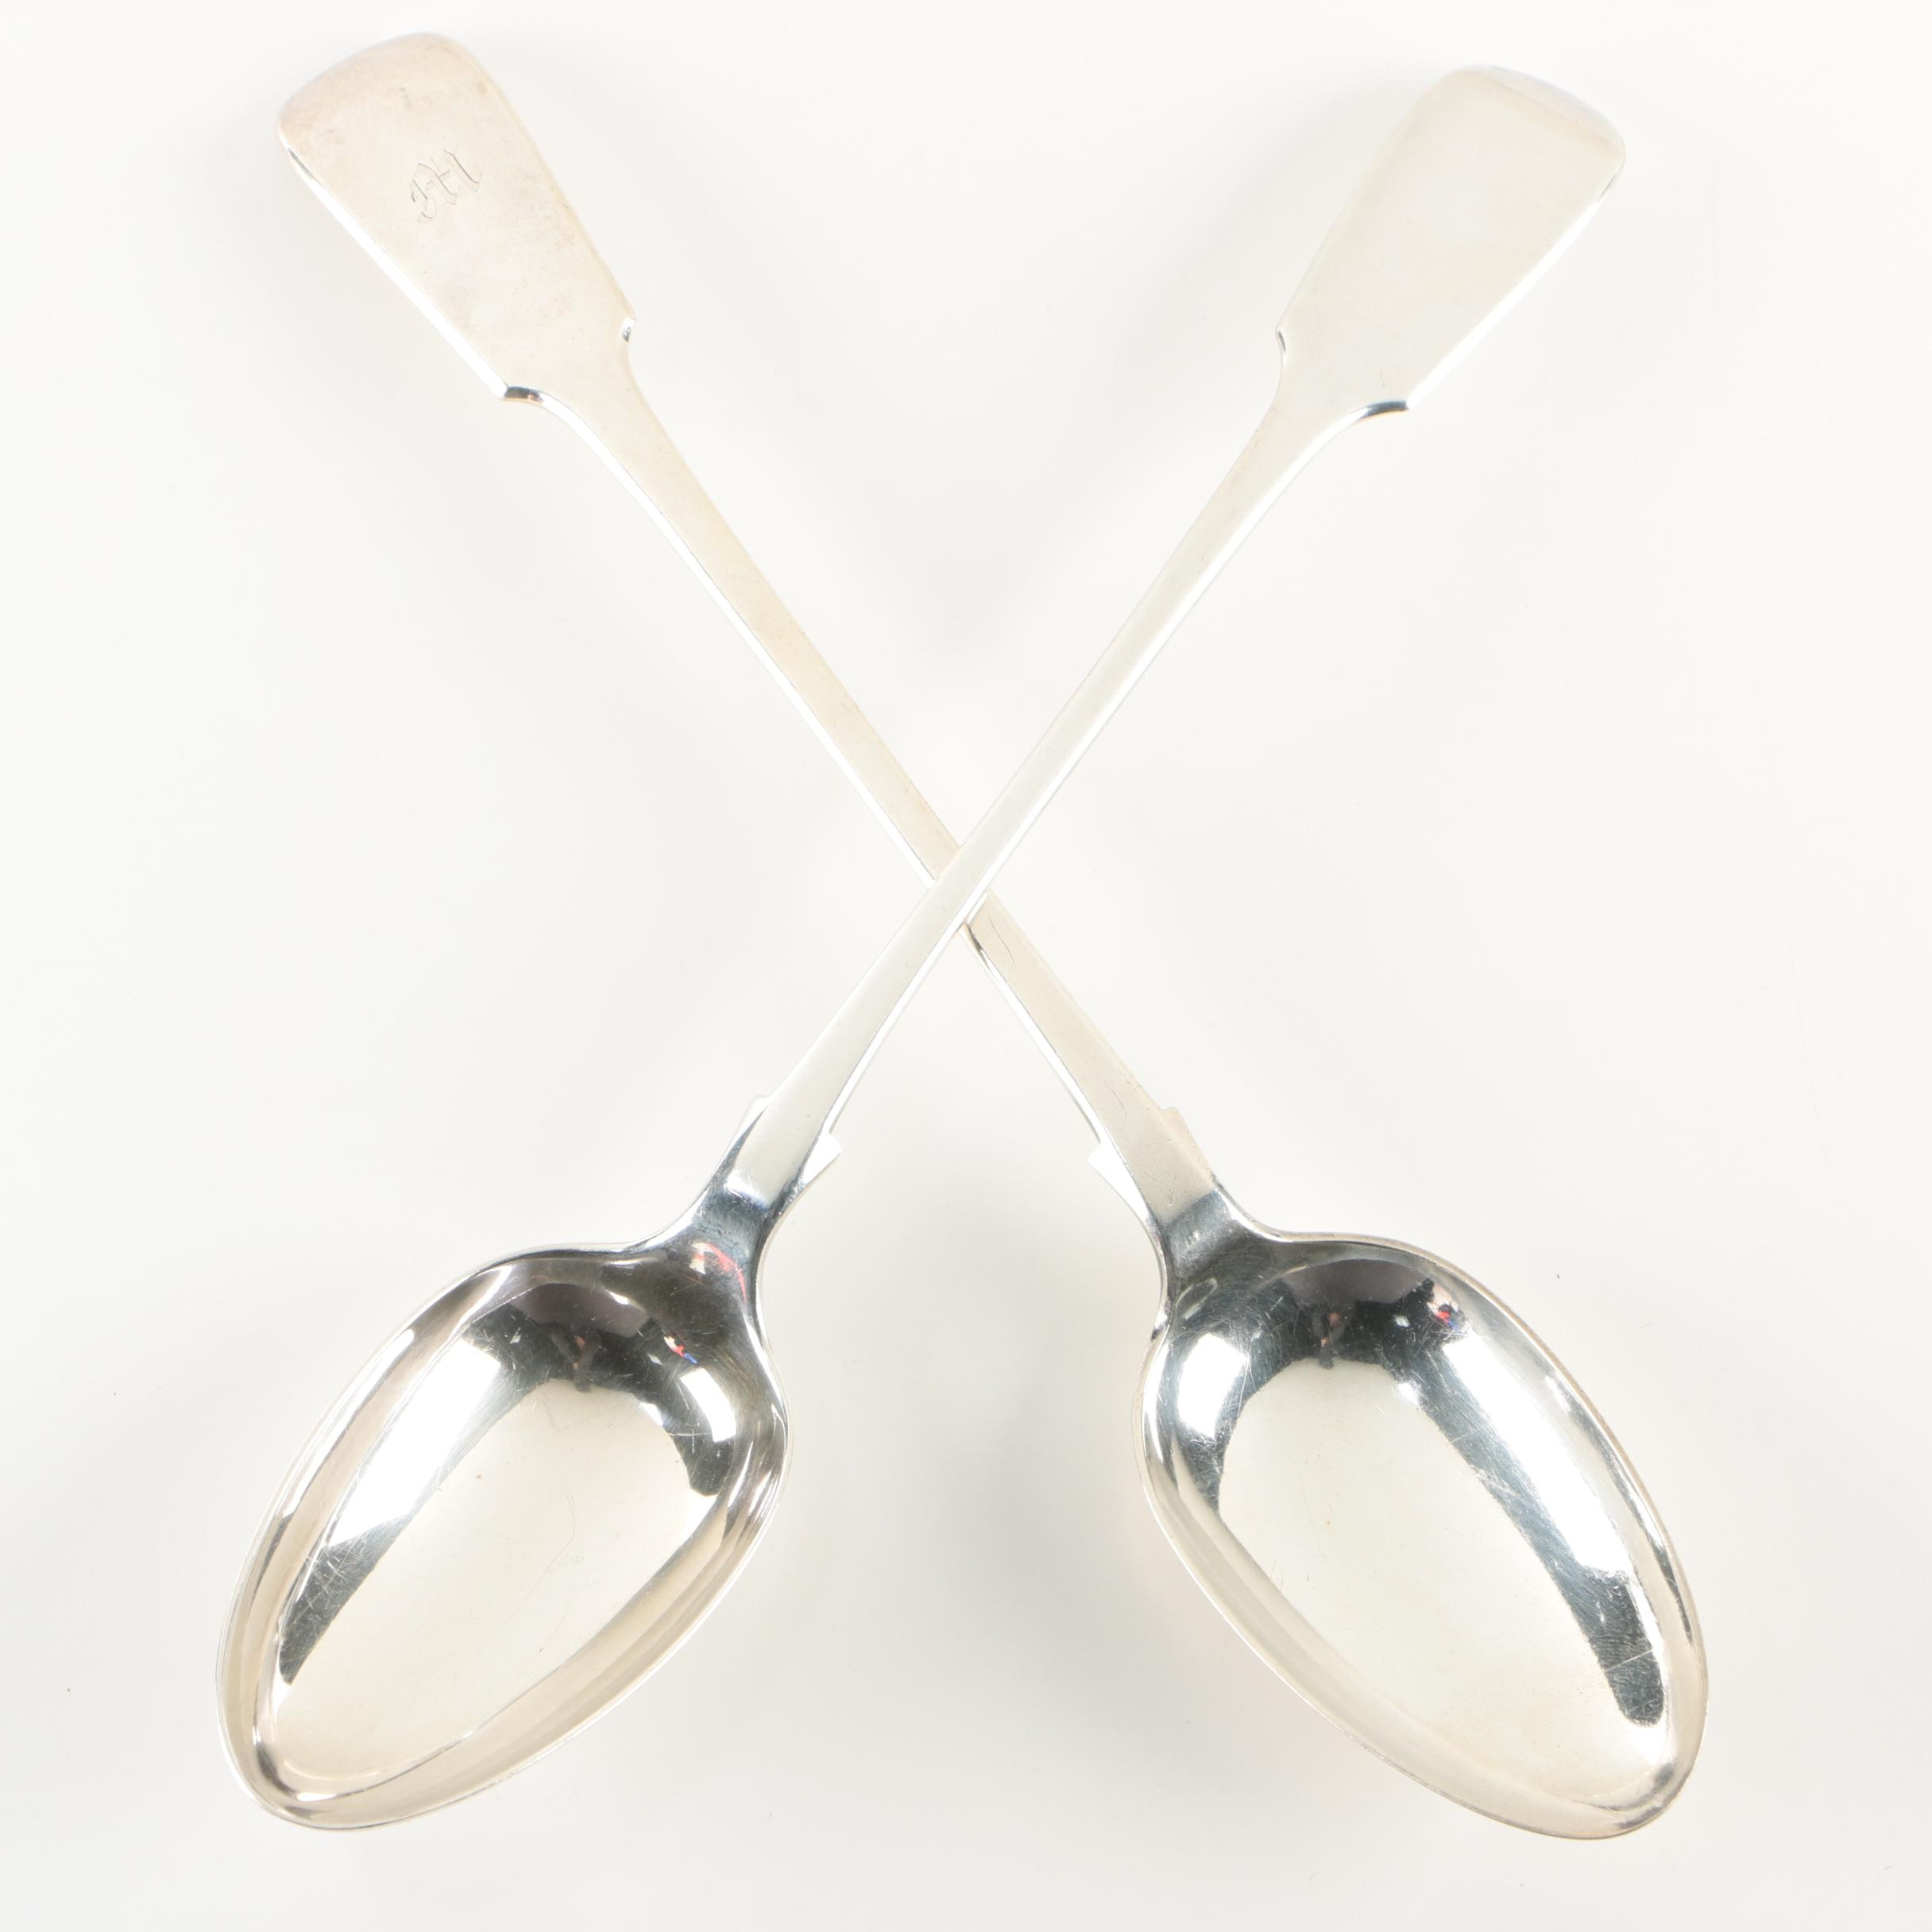 British Silver Plate Tipped Fiddle Handle Serving Spoons,